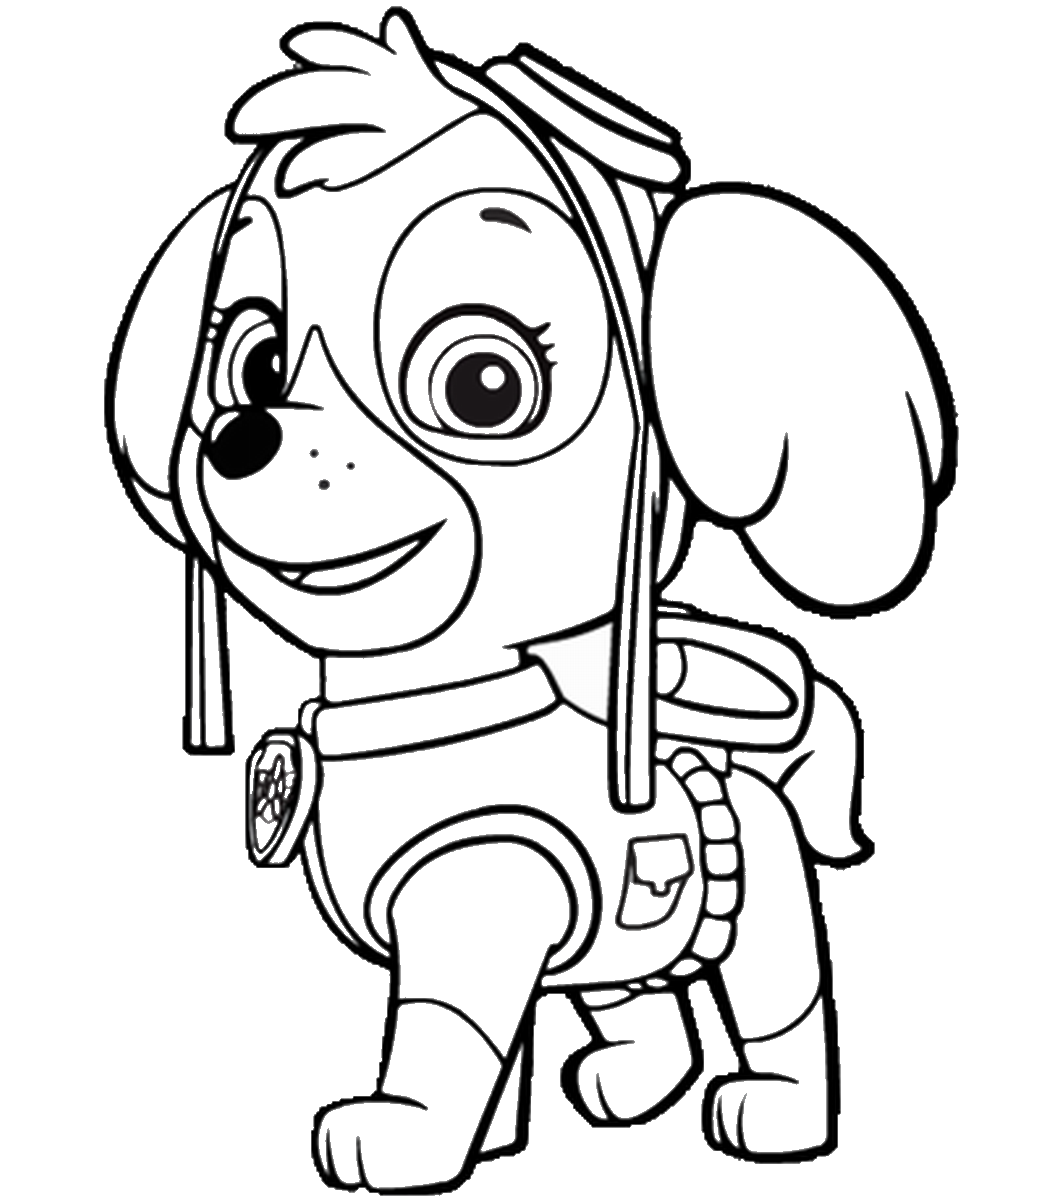 Paw Patrol - Free Colouring Pages